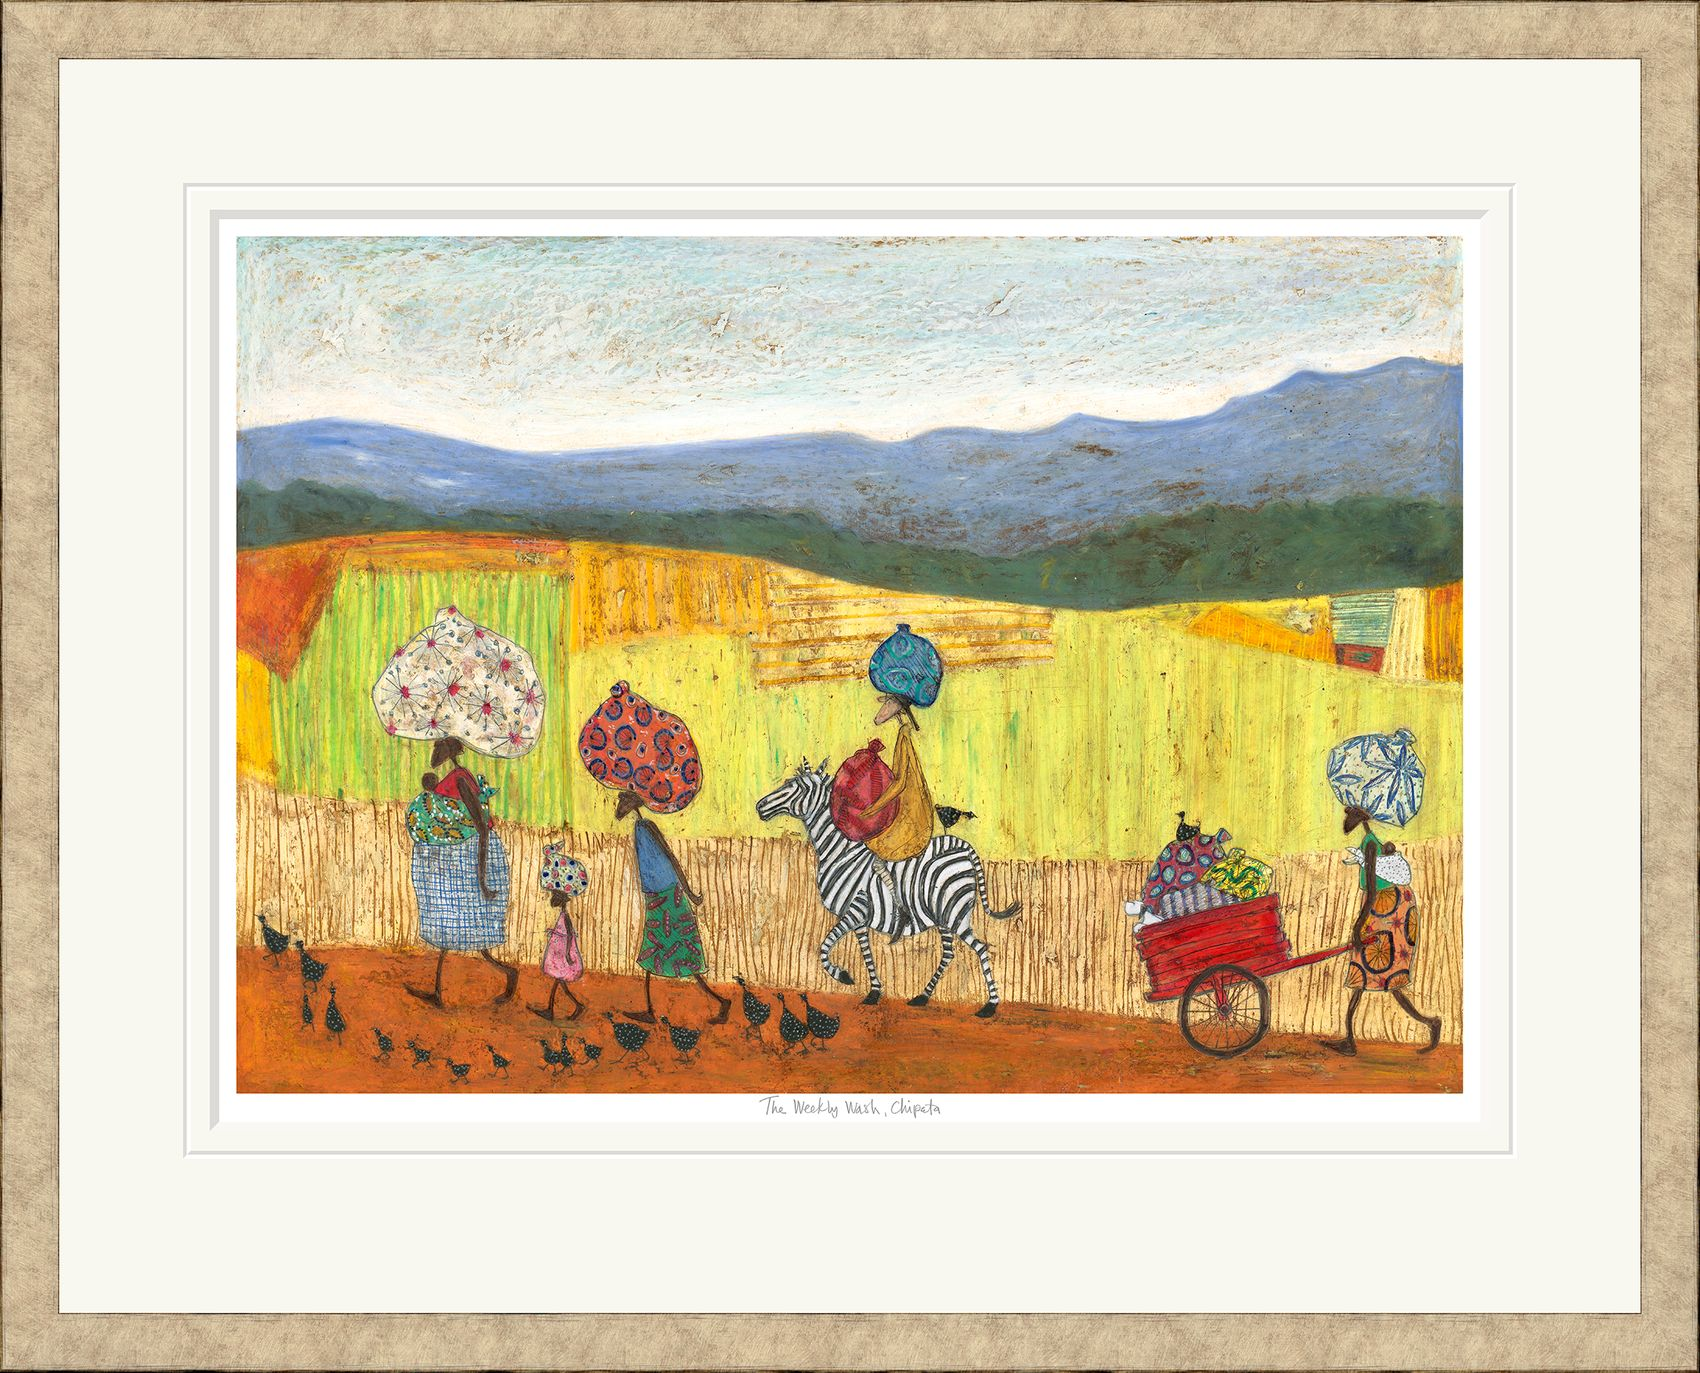 the weekly wash chipata limited edition print by sam toft